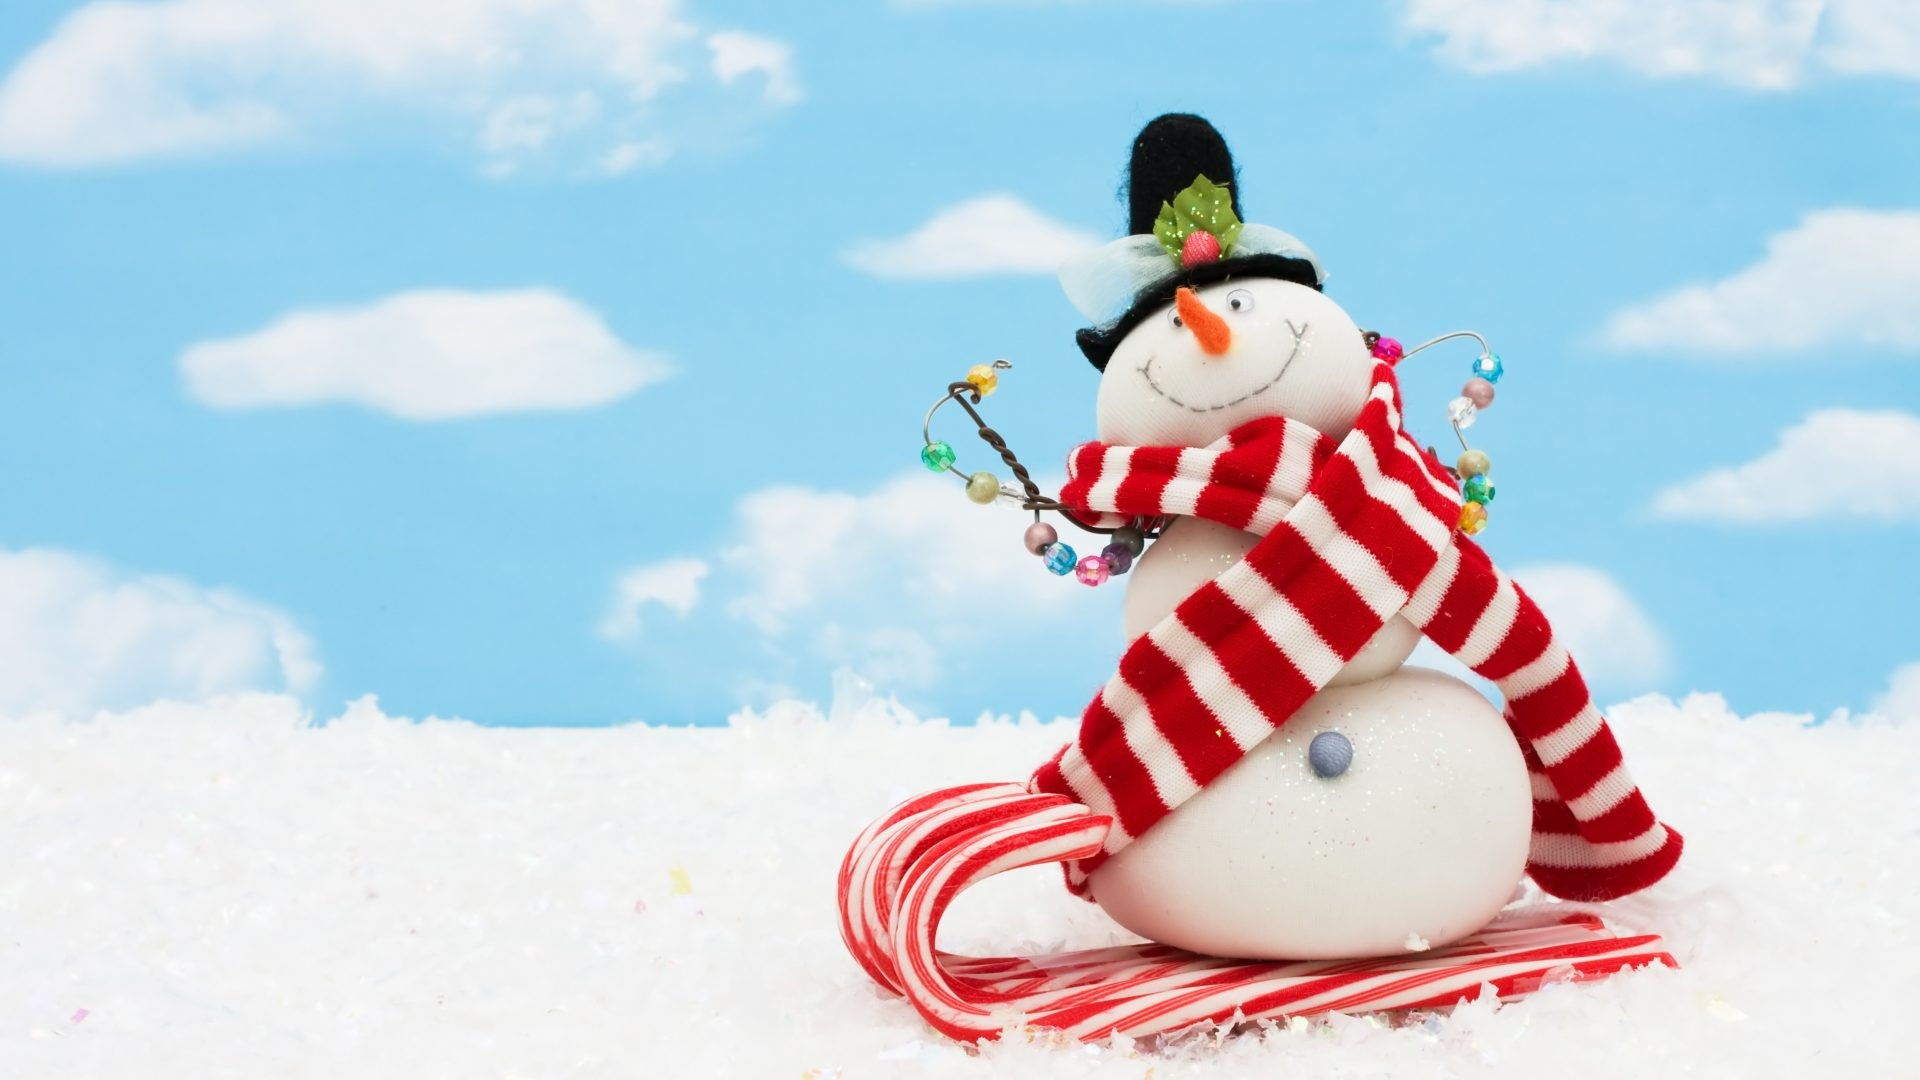 Cute snowman wallpaper - Free funny christmas desktop wallpaper ...